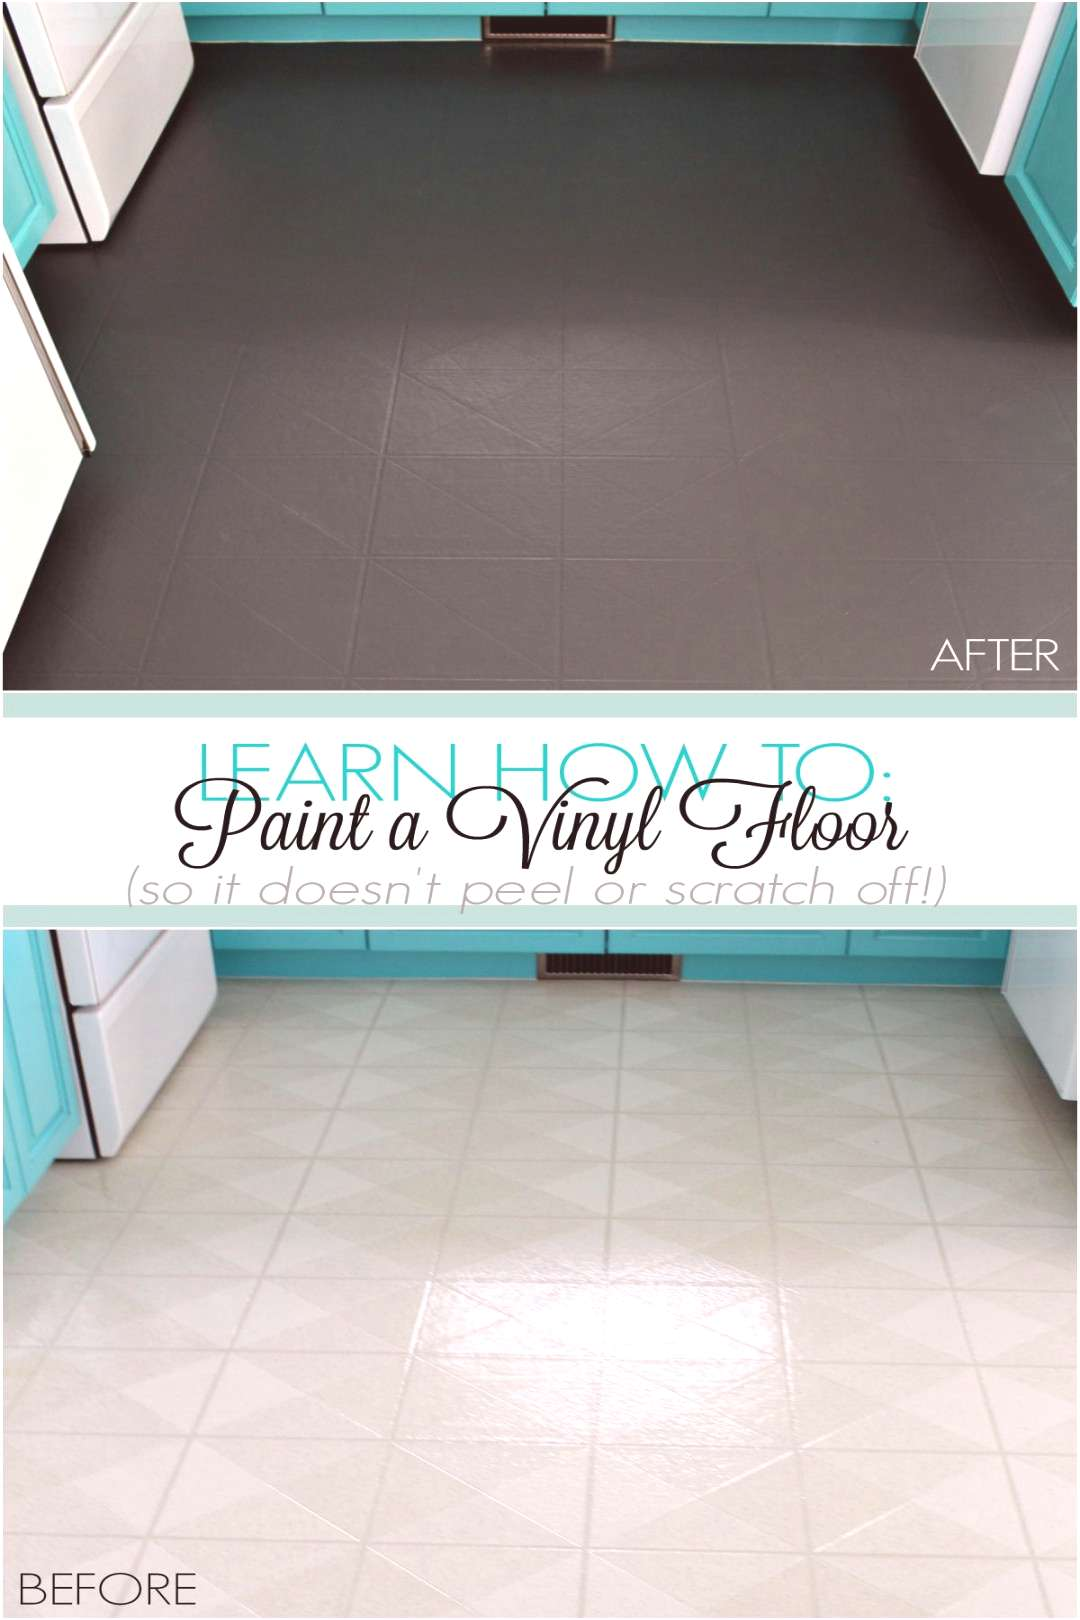 Learn How to Paint a Vinyl Floor That Wont Scratch or Peel Off. Find out how a vinyl floor has hel